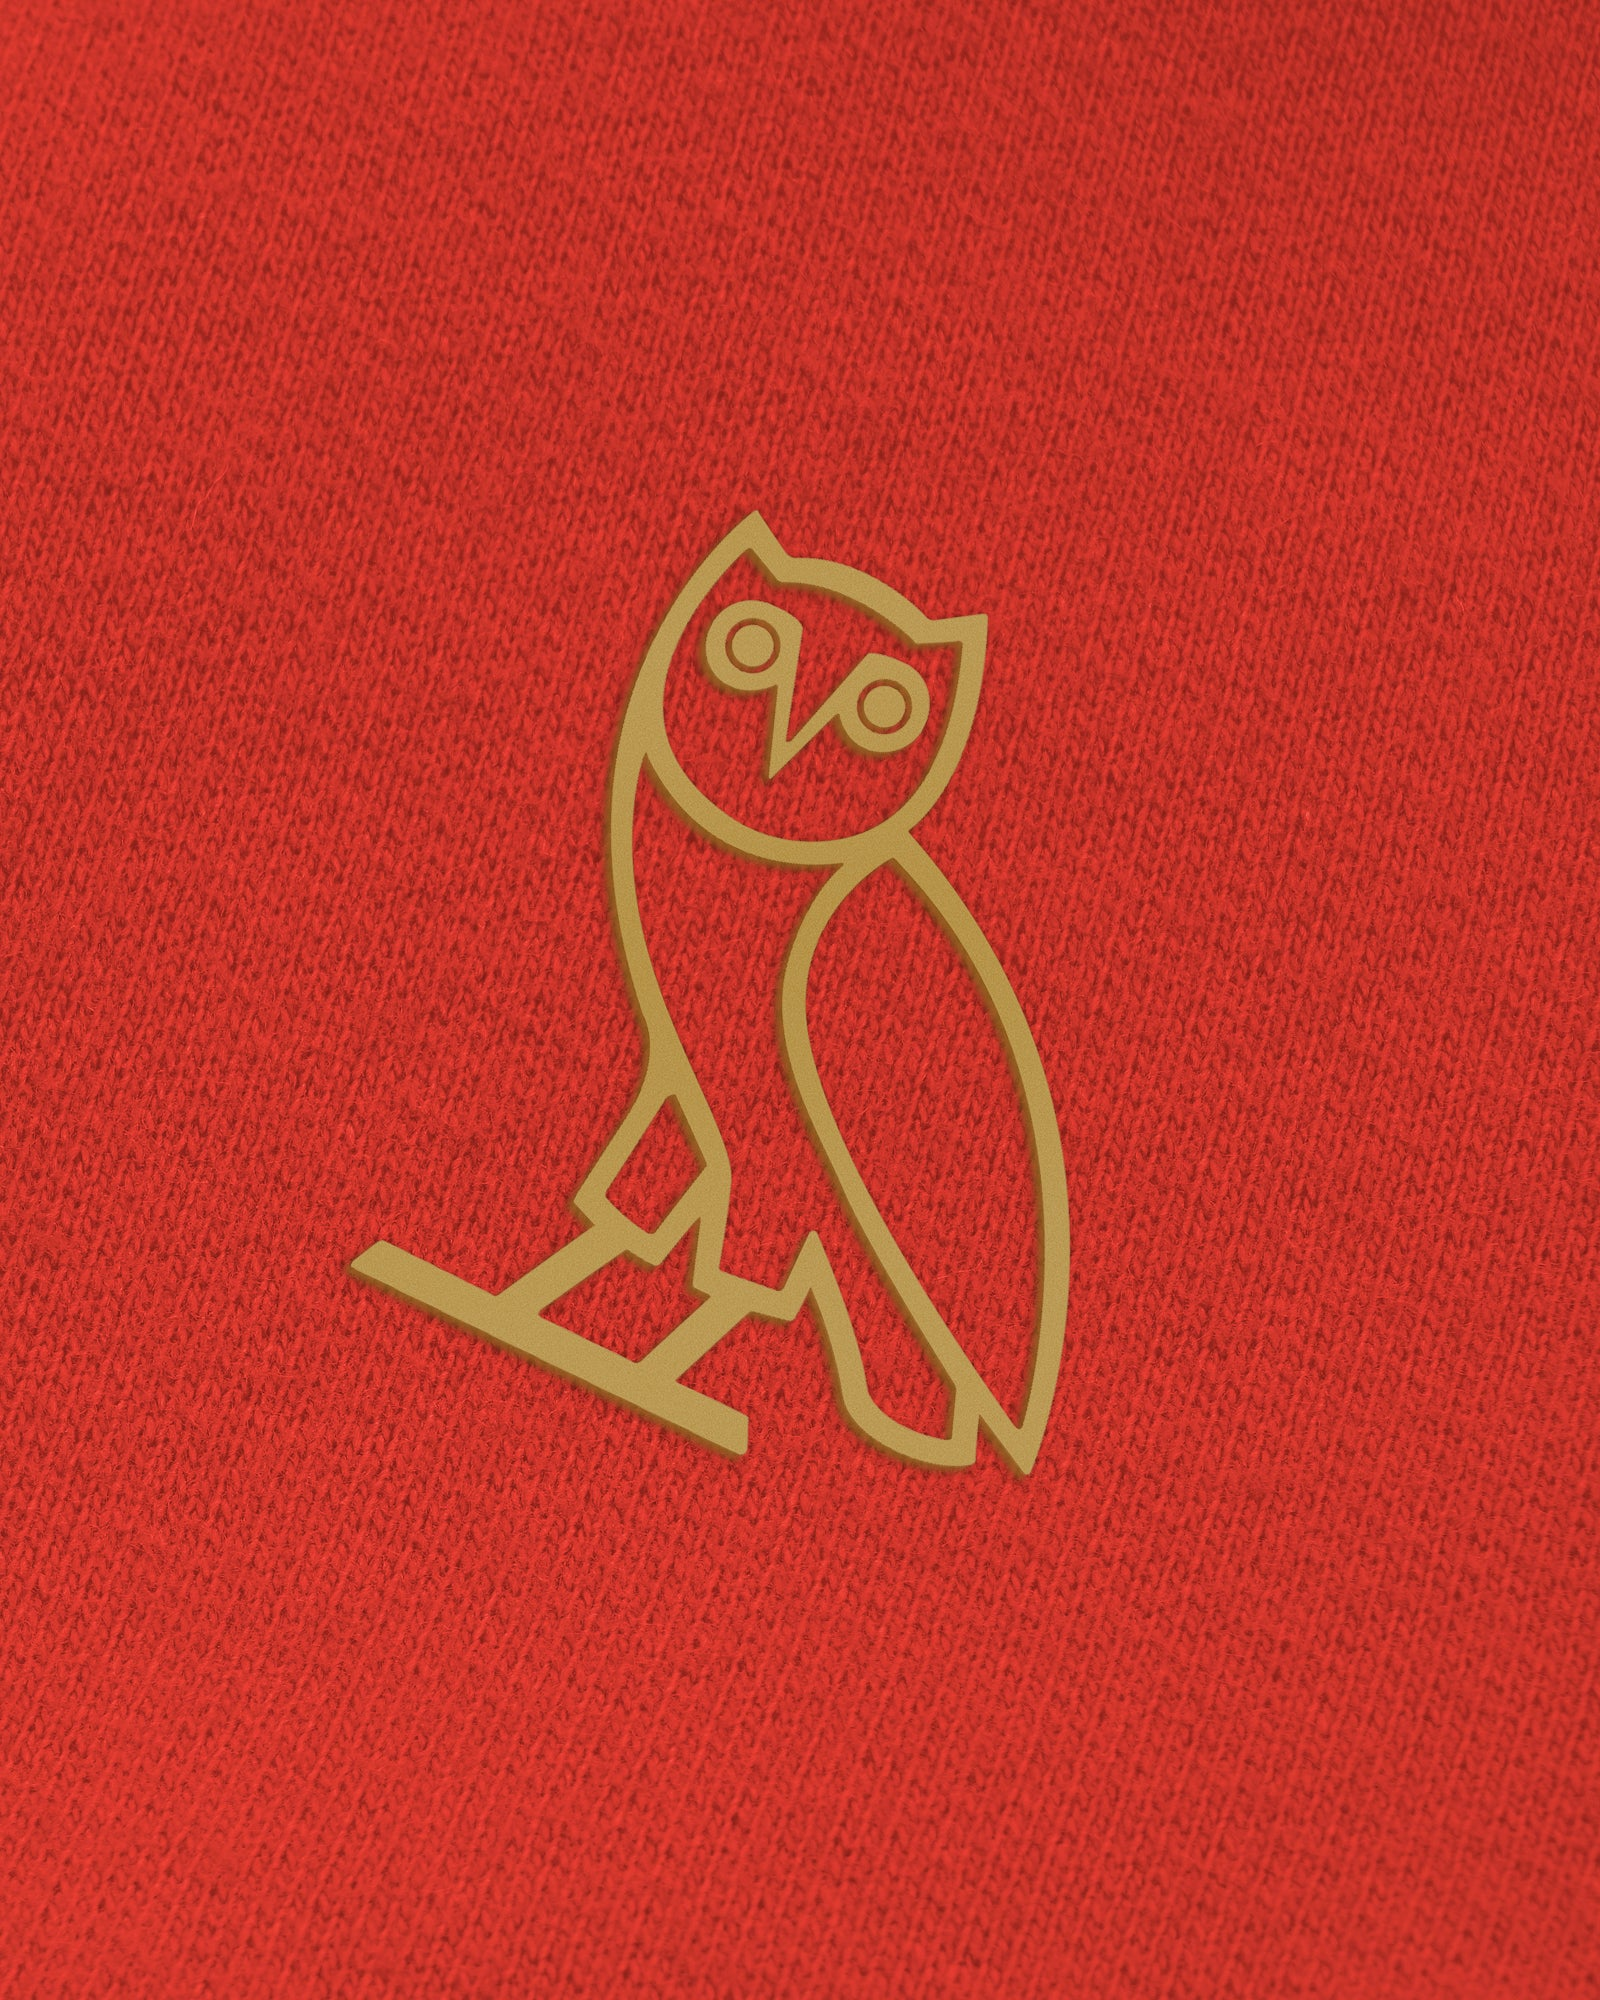 OWL LONGSLEEVE T-SHIRT - RED IMAGE #3